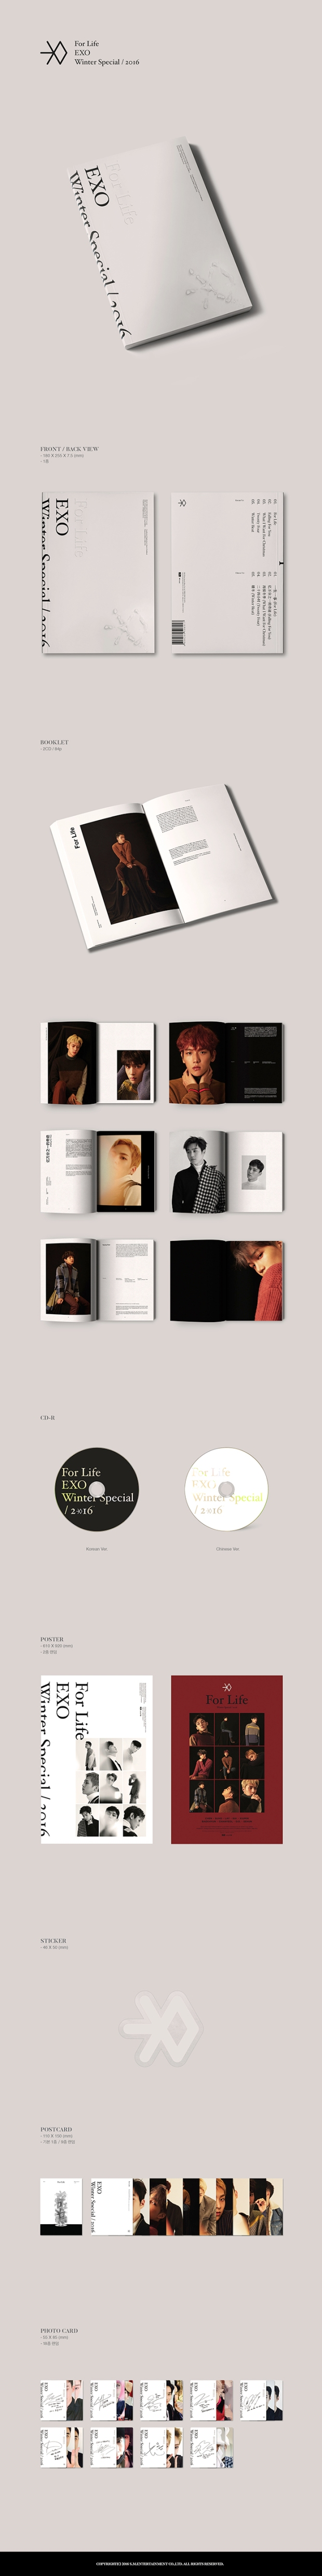 exo-2016-winter-album